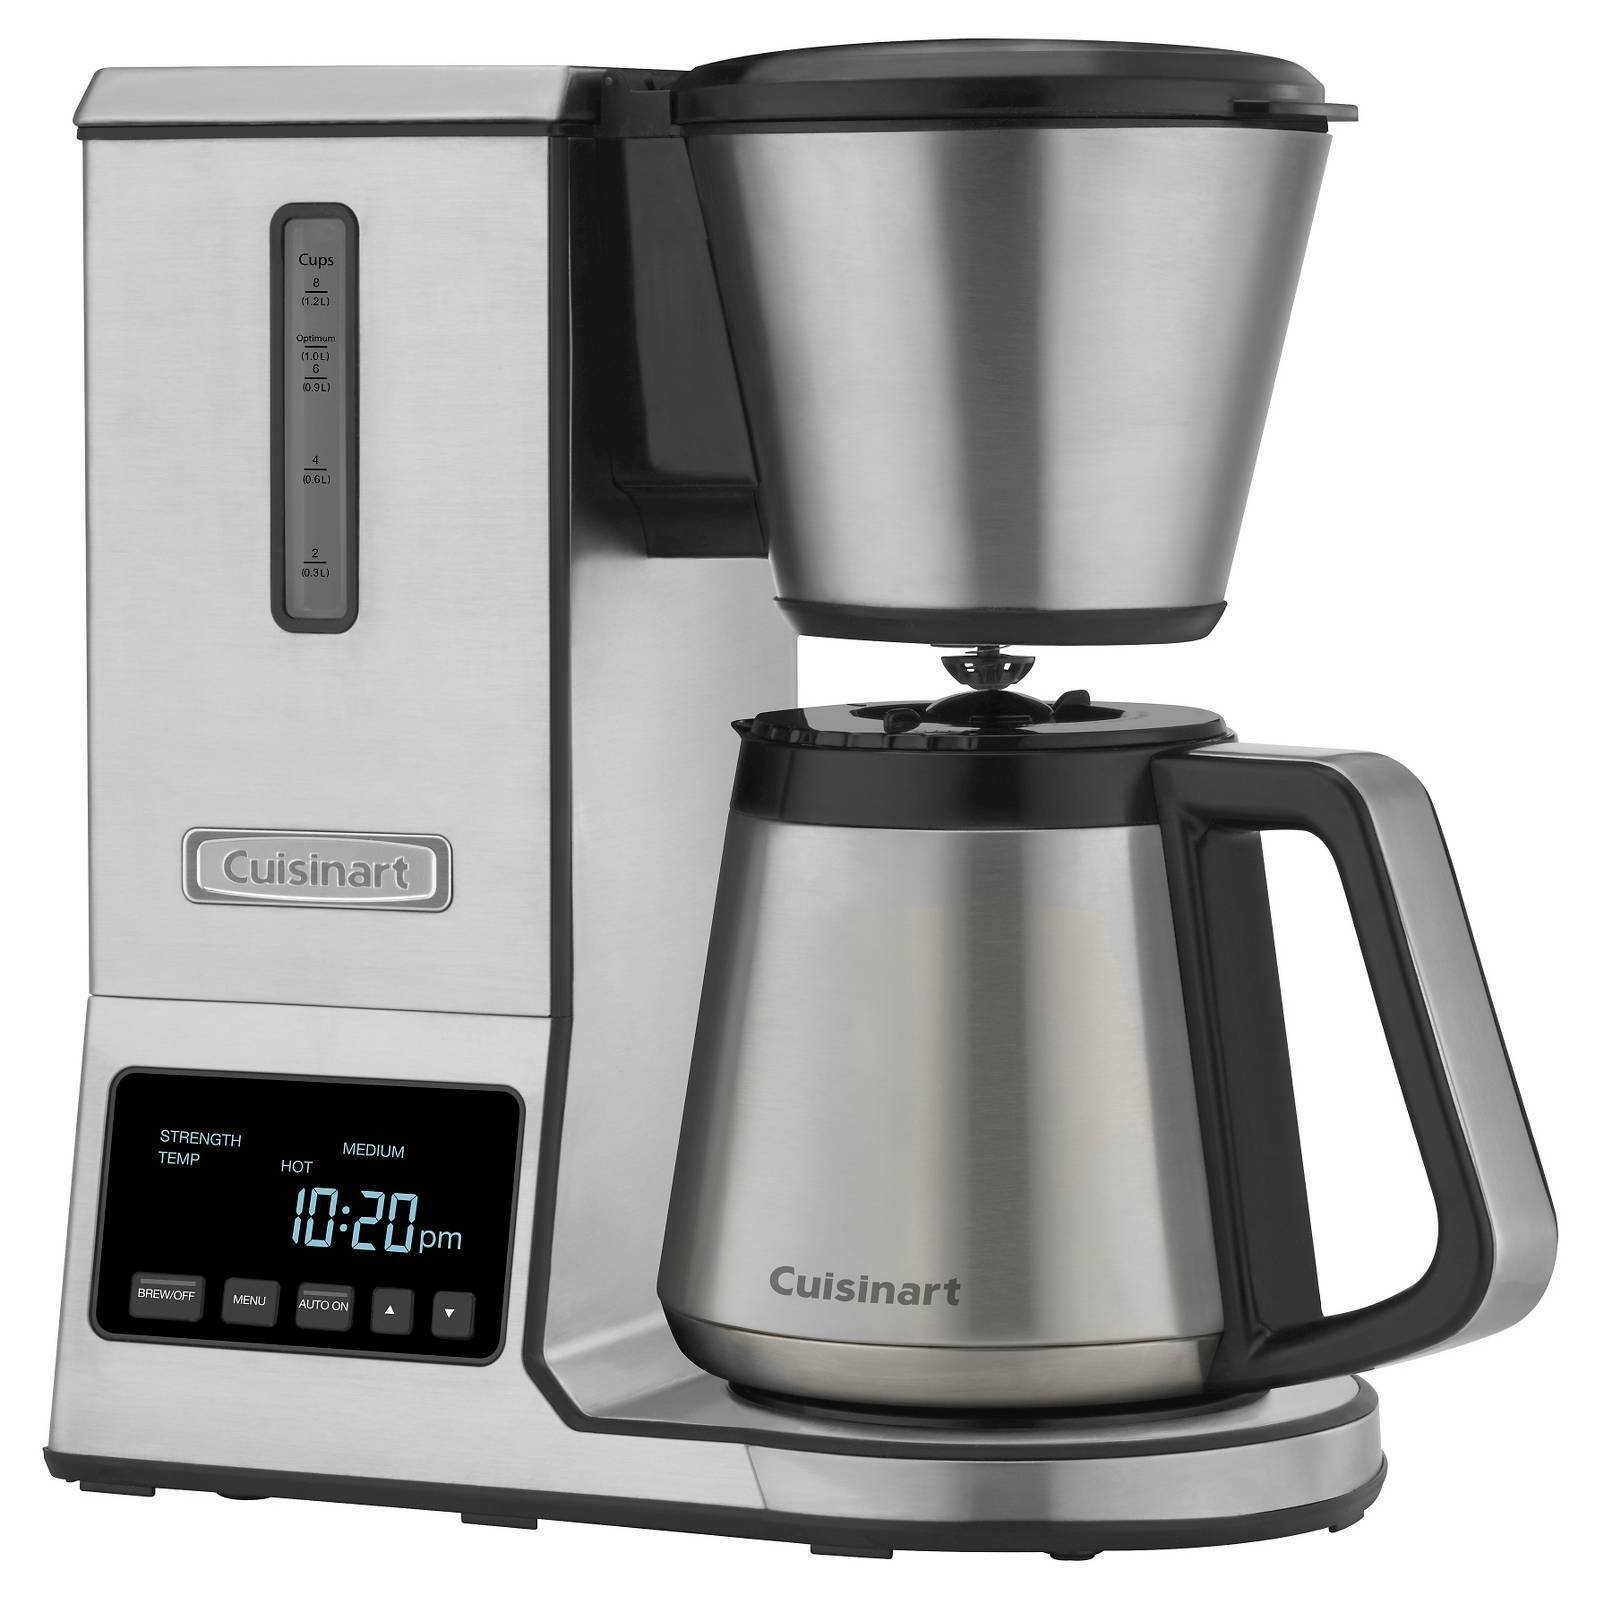 Cuisinart Pour over Coffee Brewer Thermal Carafe Stainless Steel - BRAND NEW